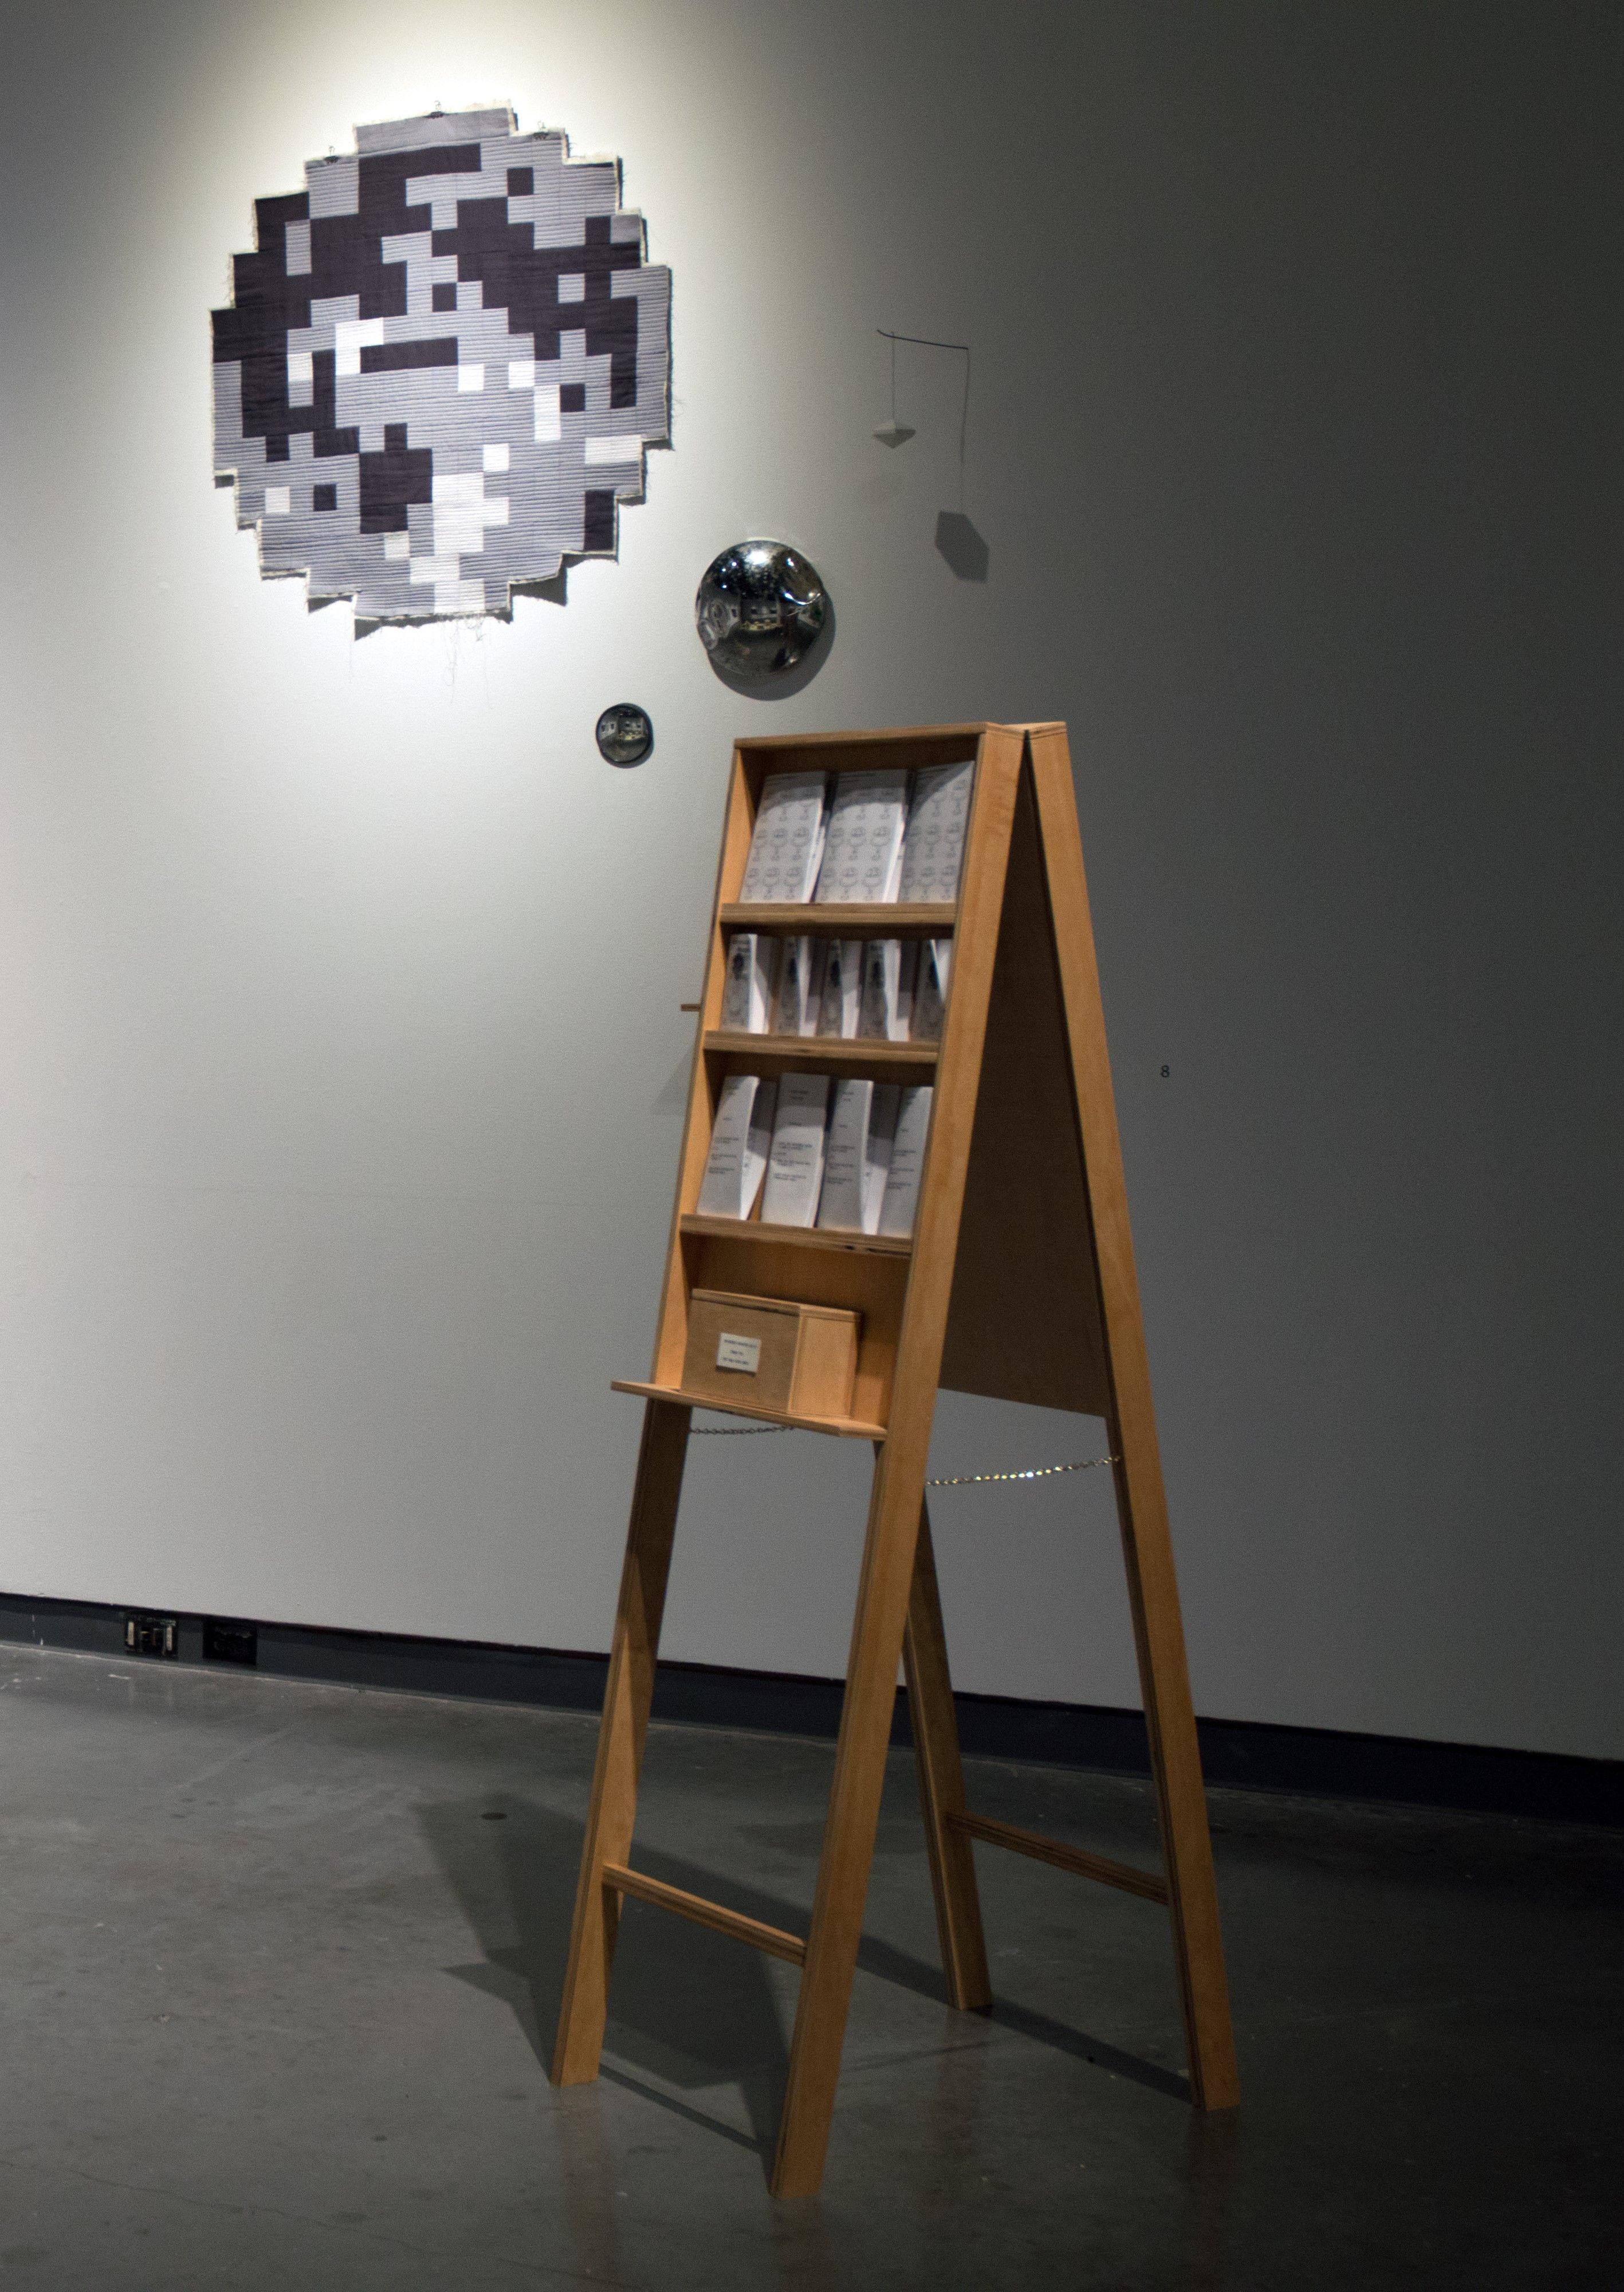 Kate Testa, The Pamphlet Rack and The Moon, 2018, Mixed